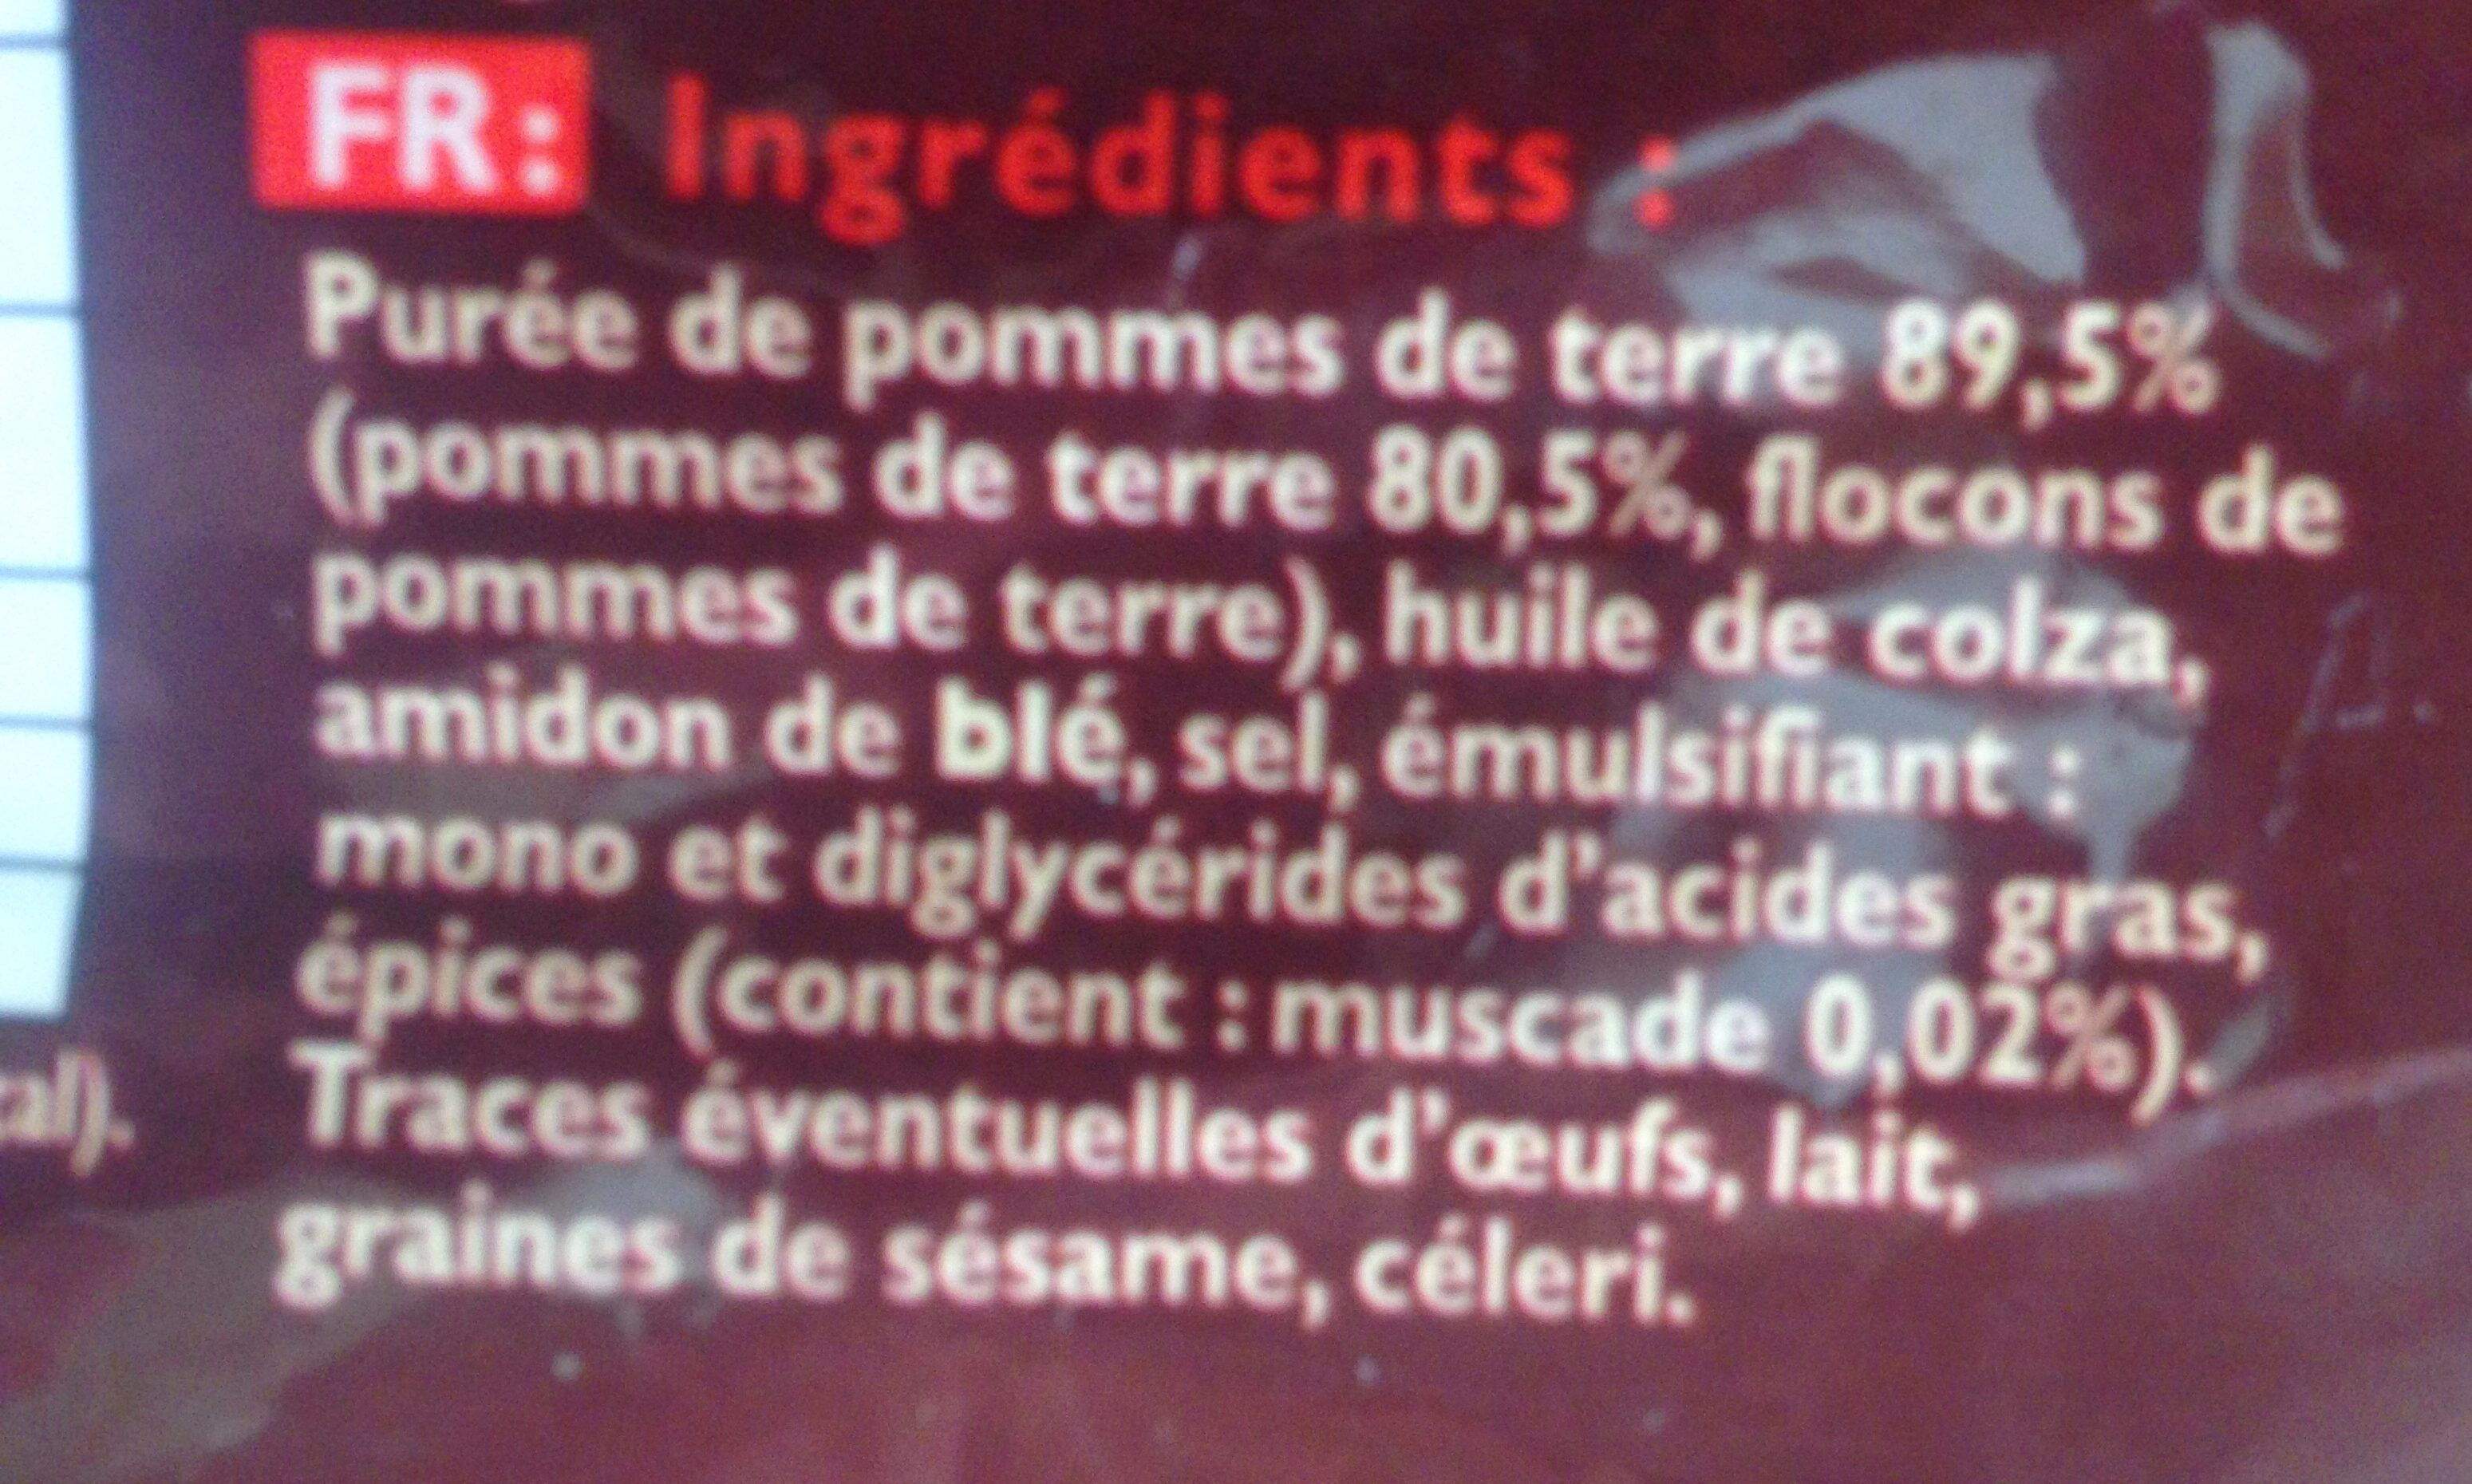 Pommes noisettes - Ingredients